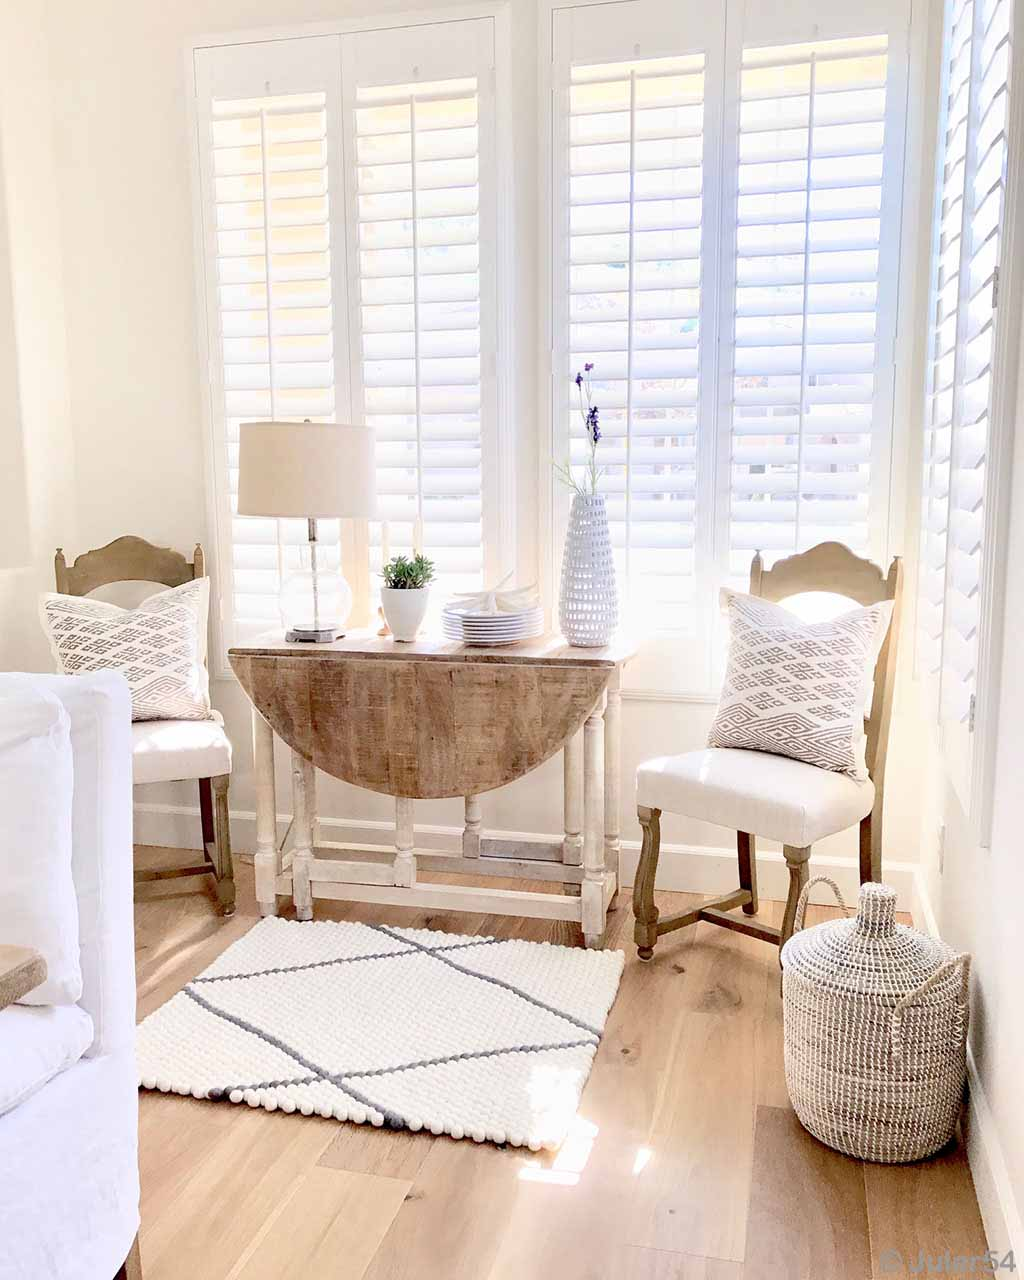 side table chairs and basket asian traditional cheap rugs